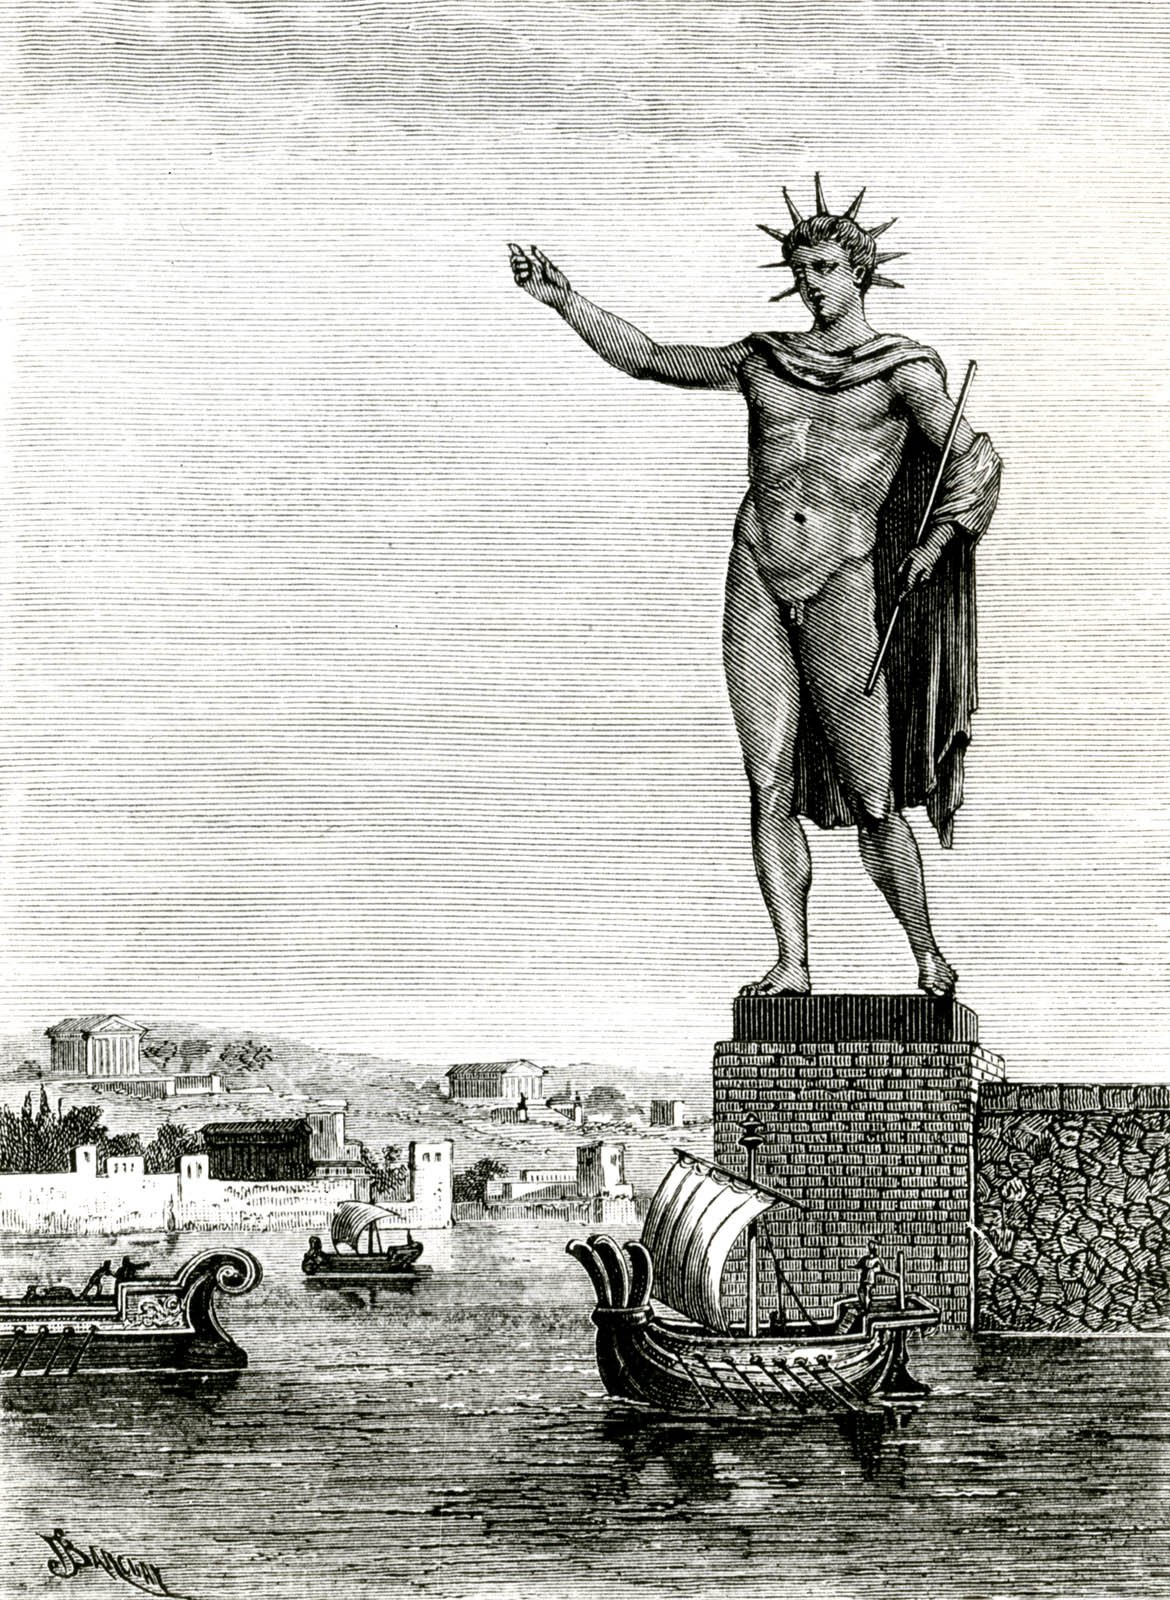 the new colossus, colossus of rhodes, statue, helios